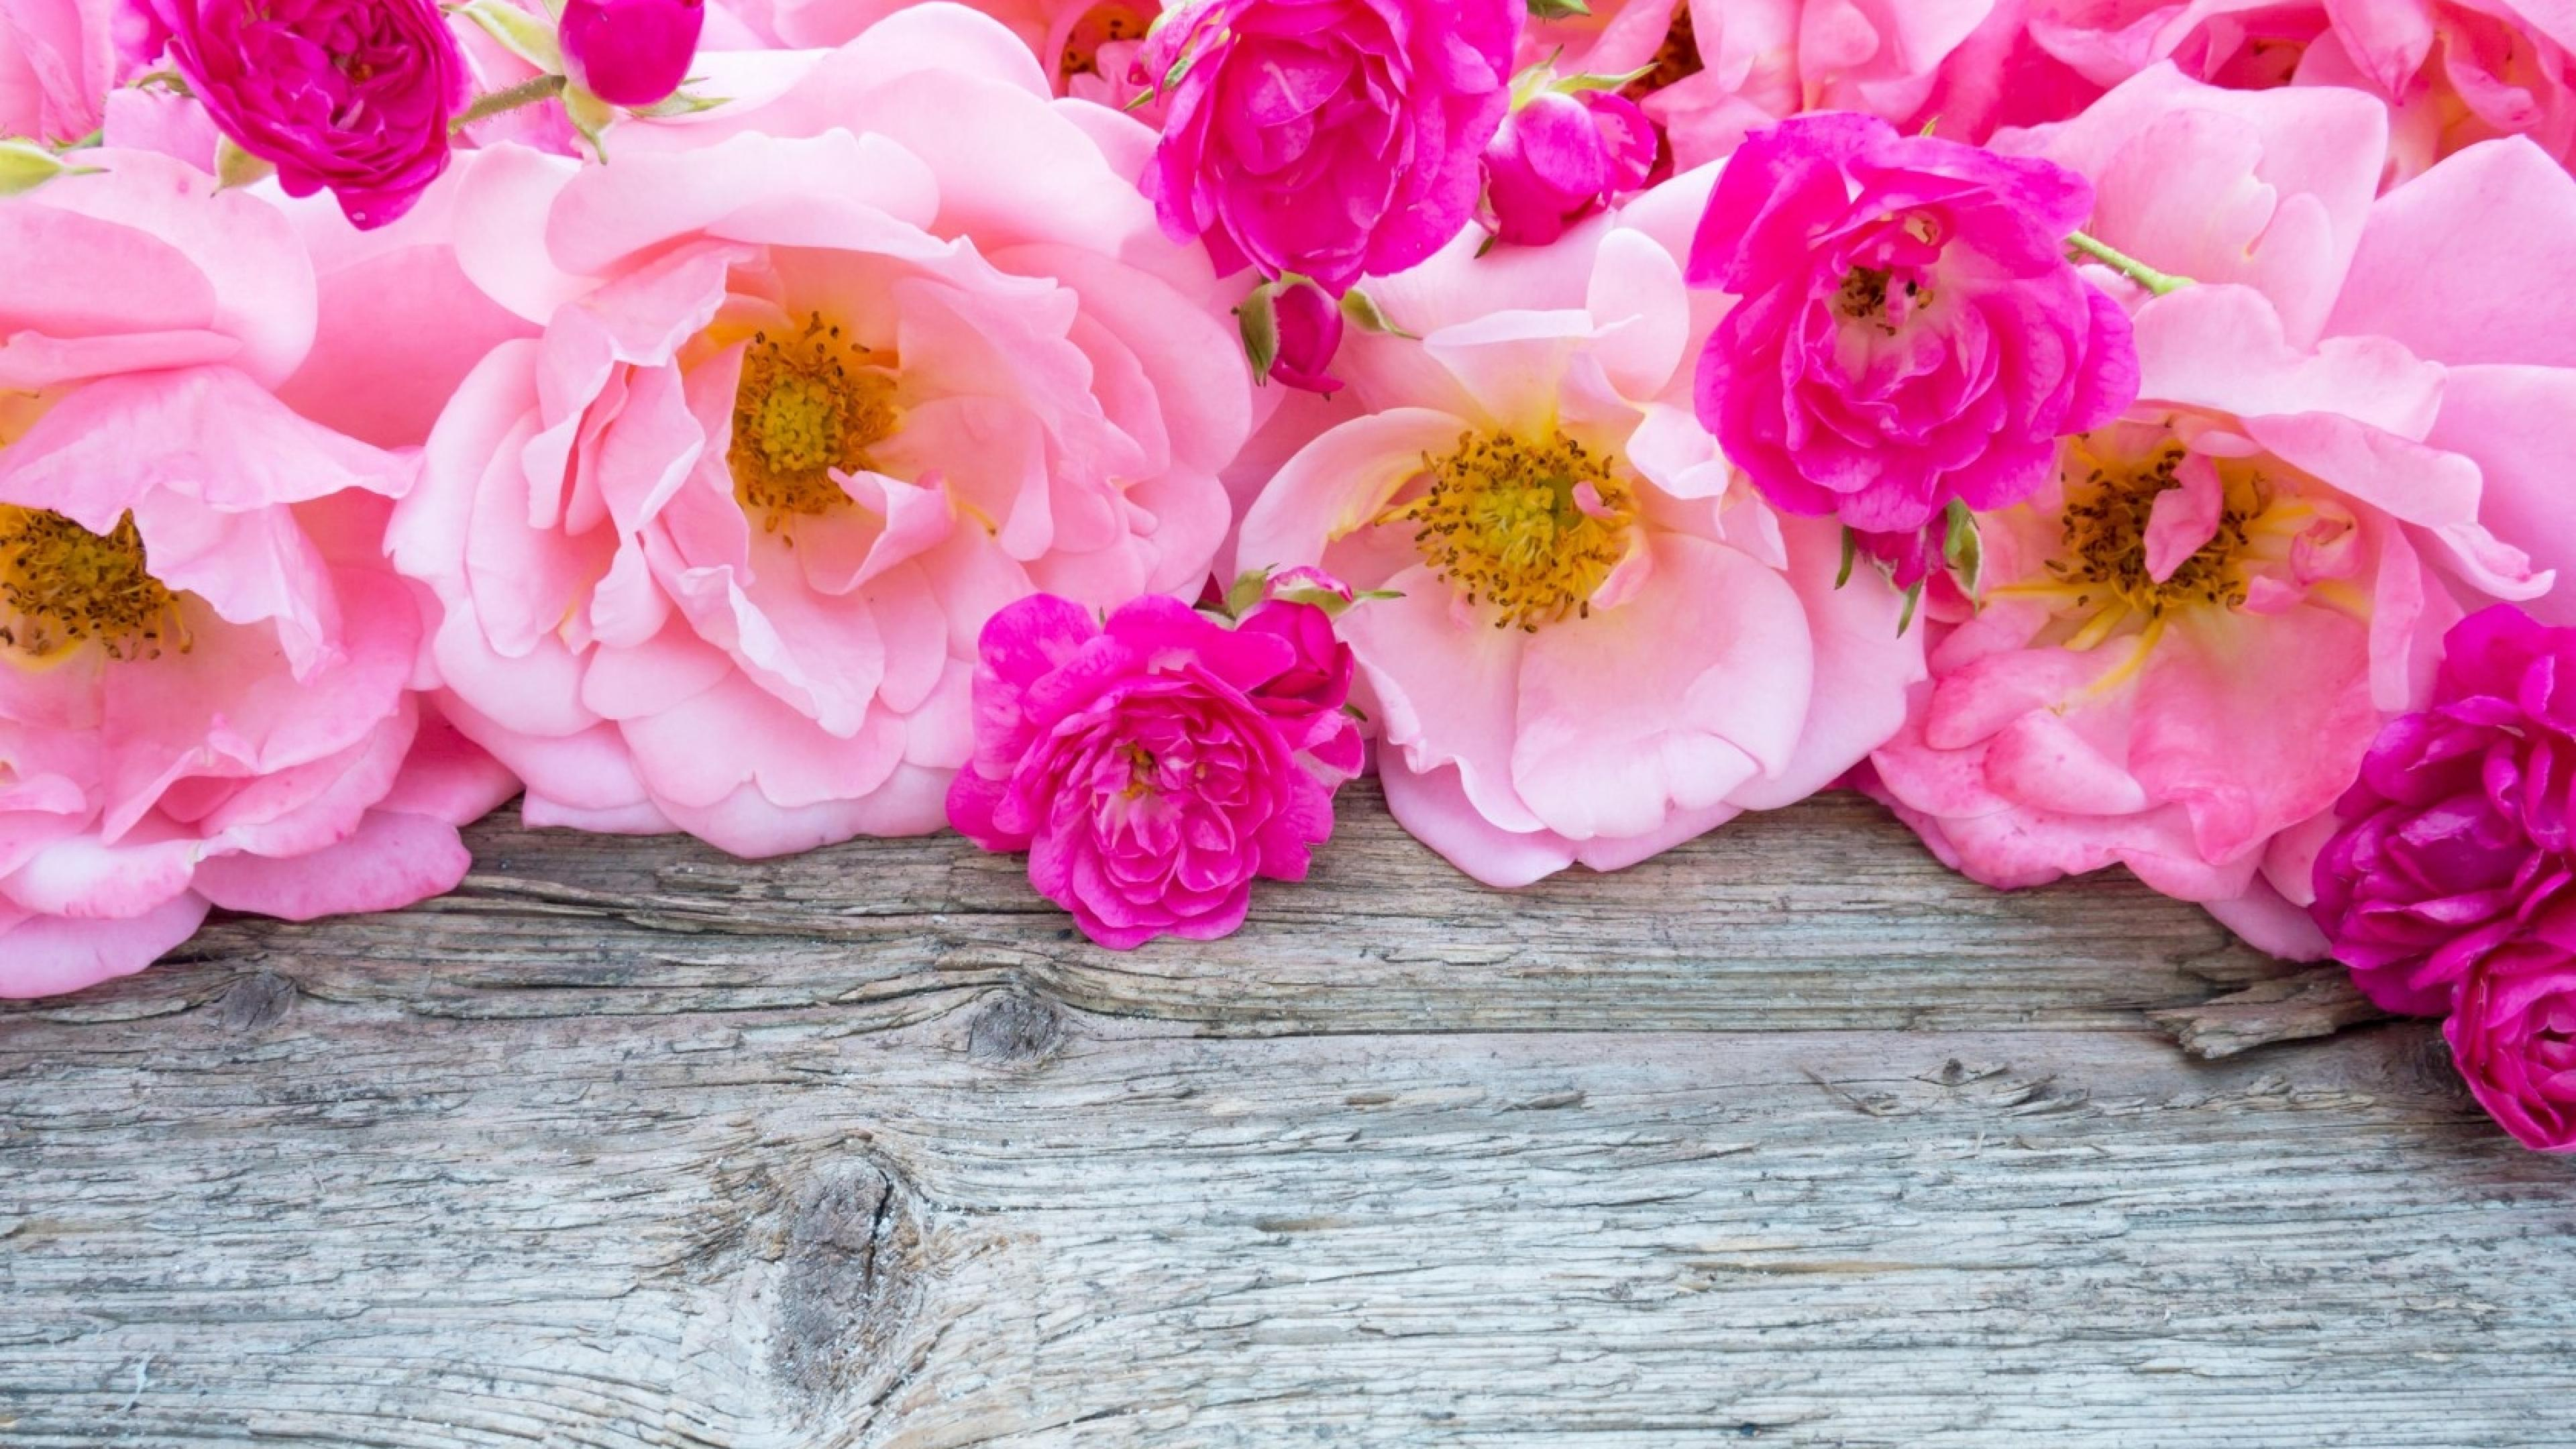 Pink Roses 4k Ultra Hd Wallpaper Background Image 3840x2160